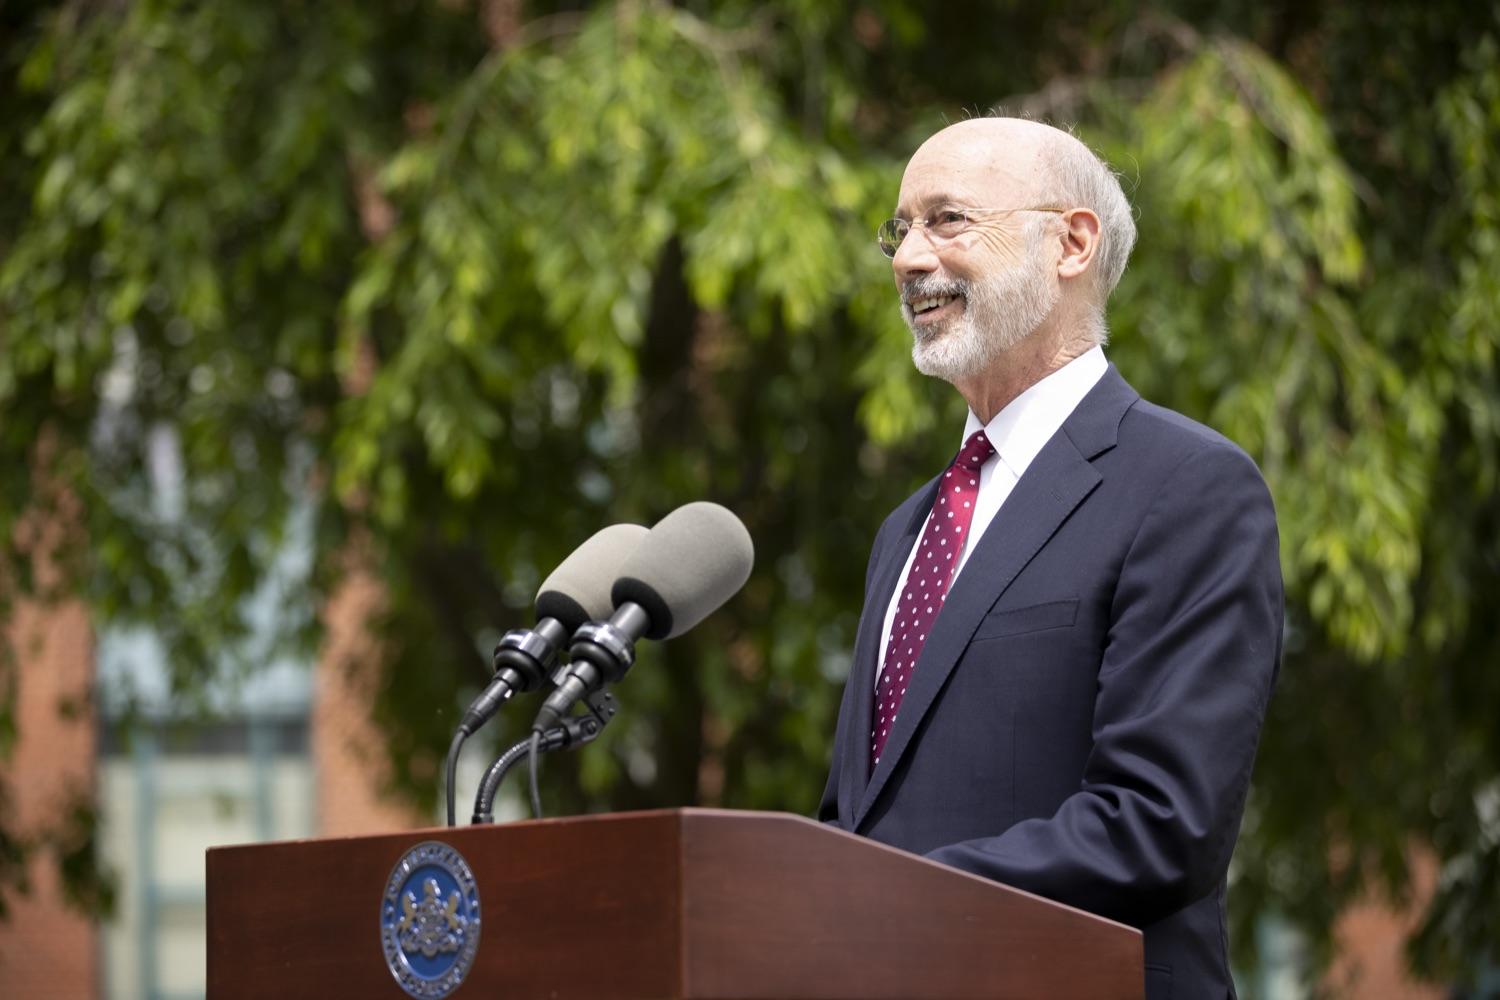 """<a href=""""https://filesource.wostreaming.net/commonwealthofpa/photo/18796_gov_charterSchool_dz_019.jpg"""" target=""""_blank"""">⇣Download Photo<br></a>Pennsylvania Governor Tom Wolf speaking with the press.  With overwhelming support among school districts for his charter school accountability plan, Governor Tom Wolf visited J.P. McCaskey High School in Lancaster today to discuss his bipartisan proposal that saves an estimated $395 million a year. Lancaster, PA  June 01, 2021"""